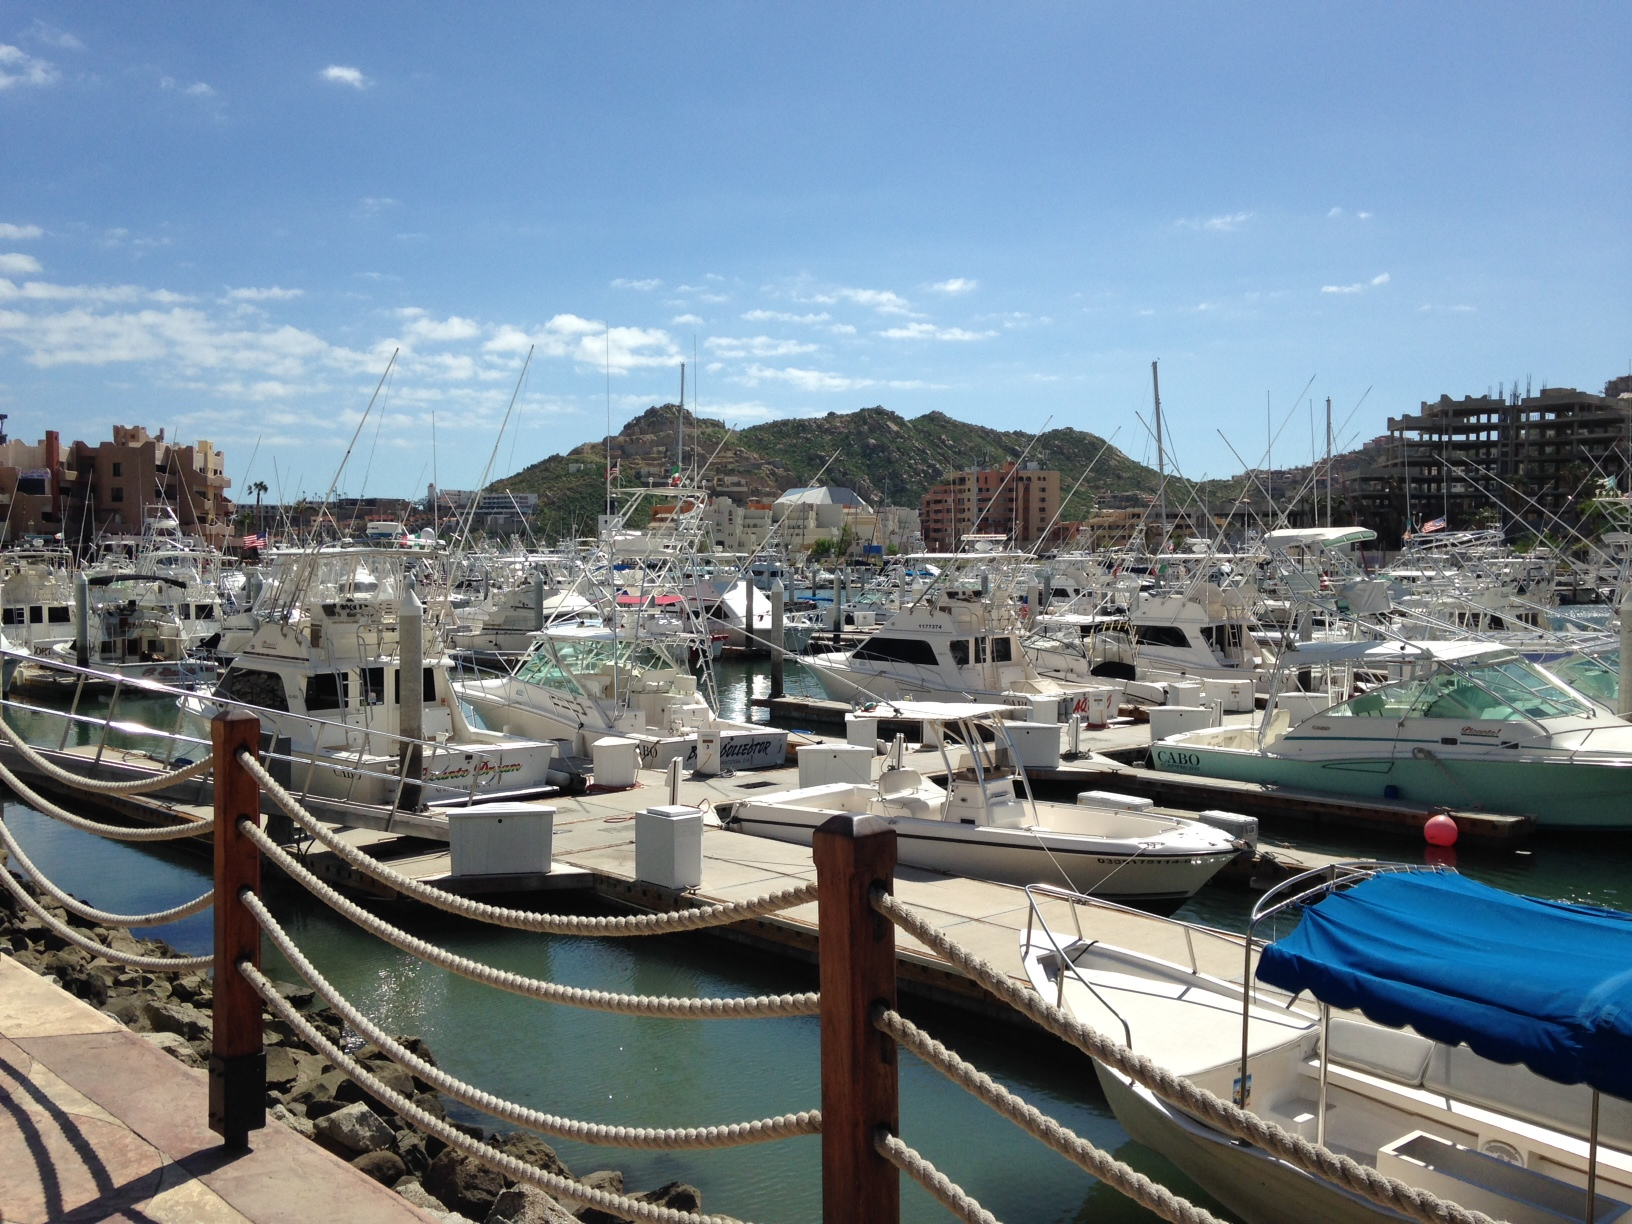 Cabo marina after the clean-up